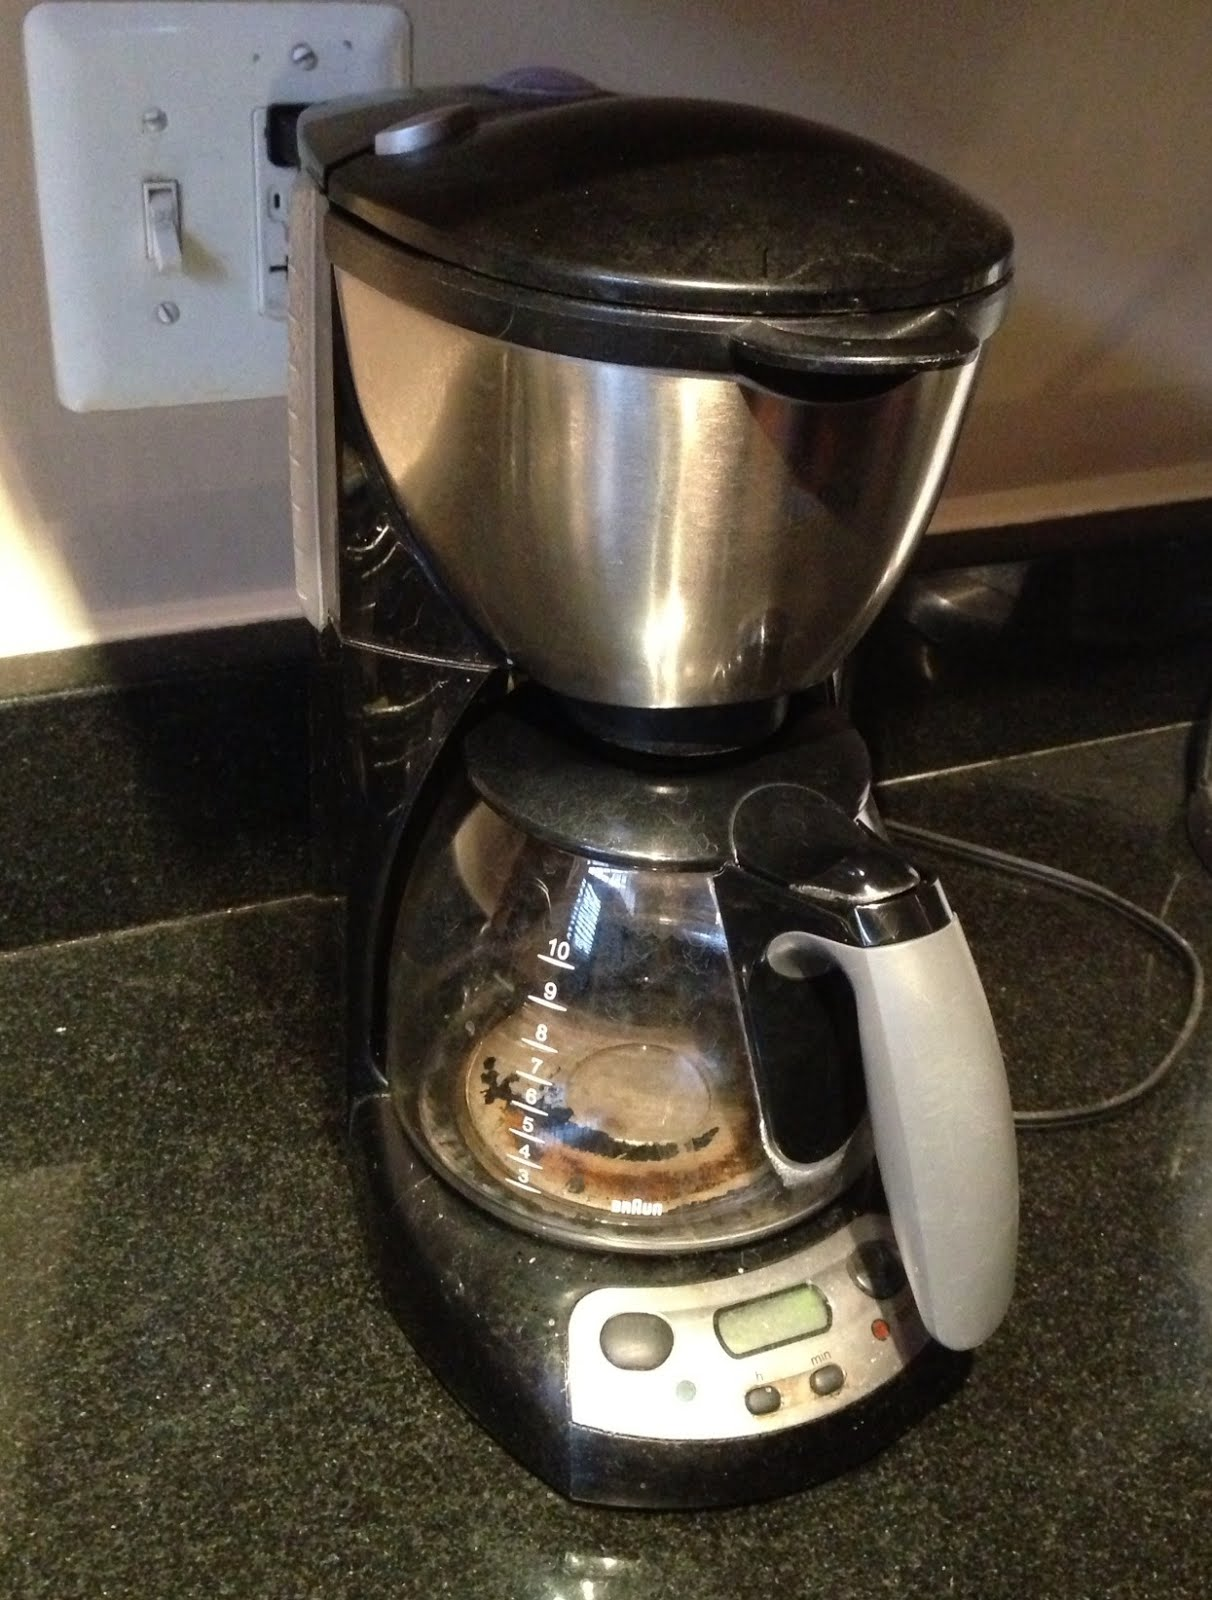 Cuisinart Coffee Maker Replacement Jug : LIT s Living on Capitol Hill (Hell!?): GE, Cuisinart Keurig, Brita, and Braun Water Filter Confusion